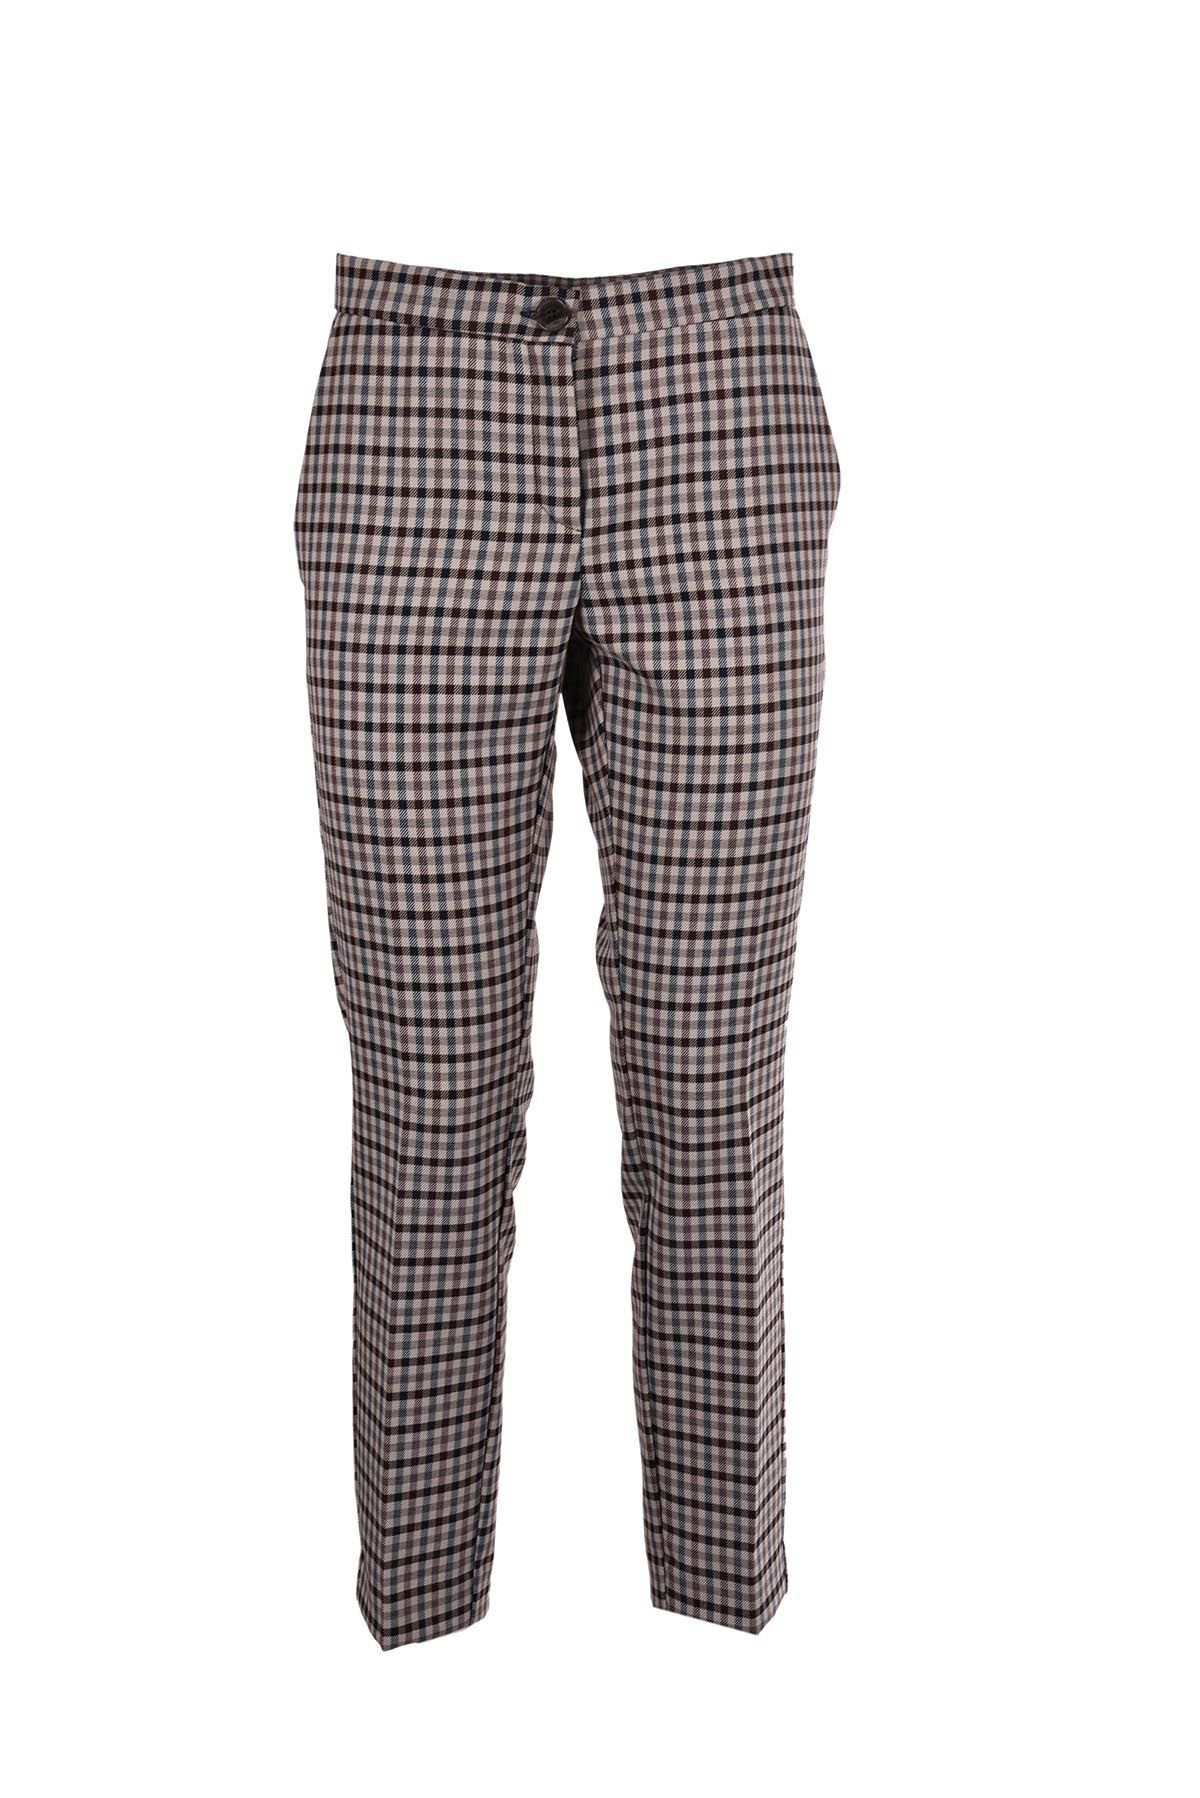 Erika Cavallini Checked Cropped Trousers